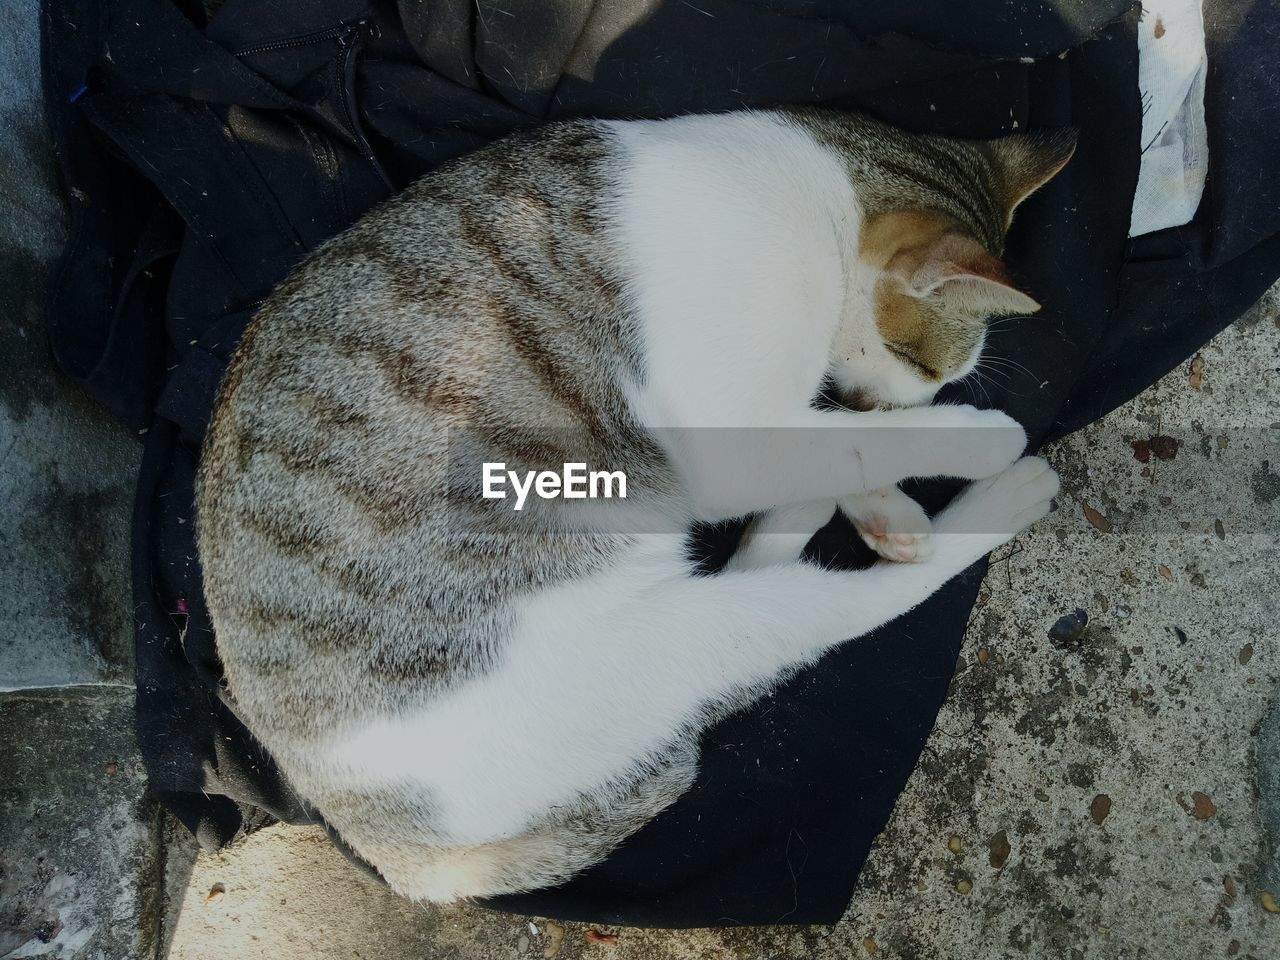 HIGH ANGLE VIEW OF A CAT SLEEPING